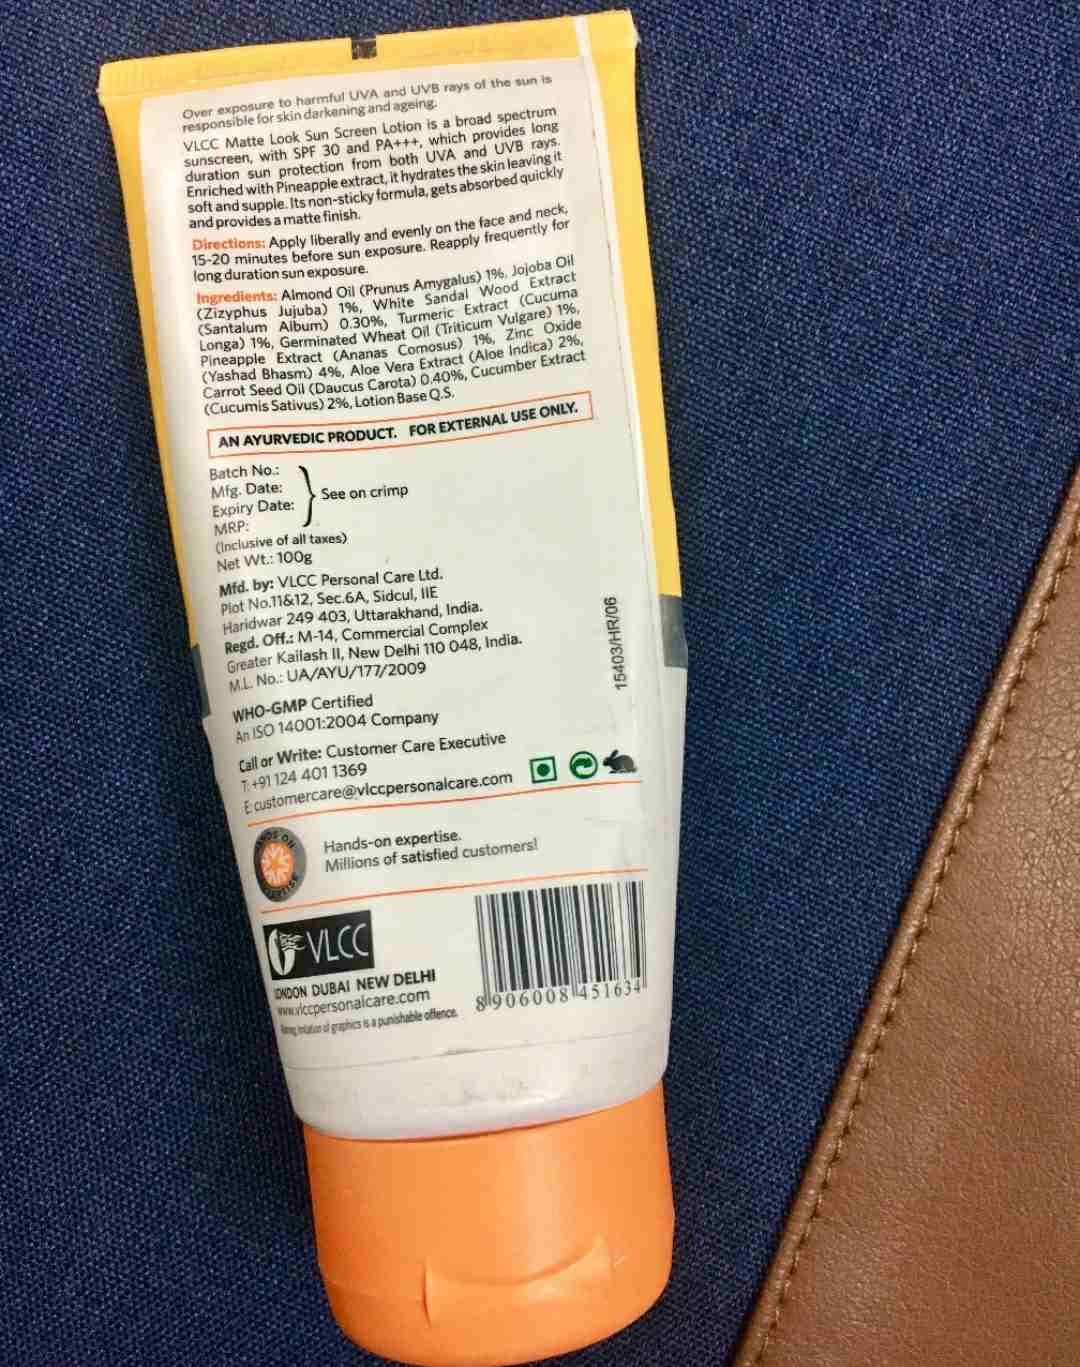 VLCC Matte Look Sunscreen Lotion SPF 30 Review